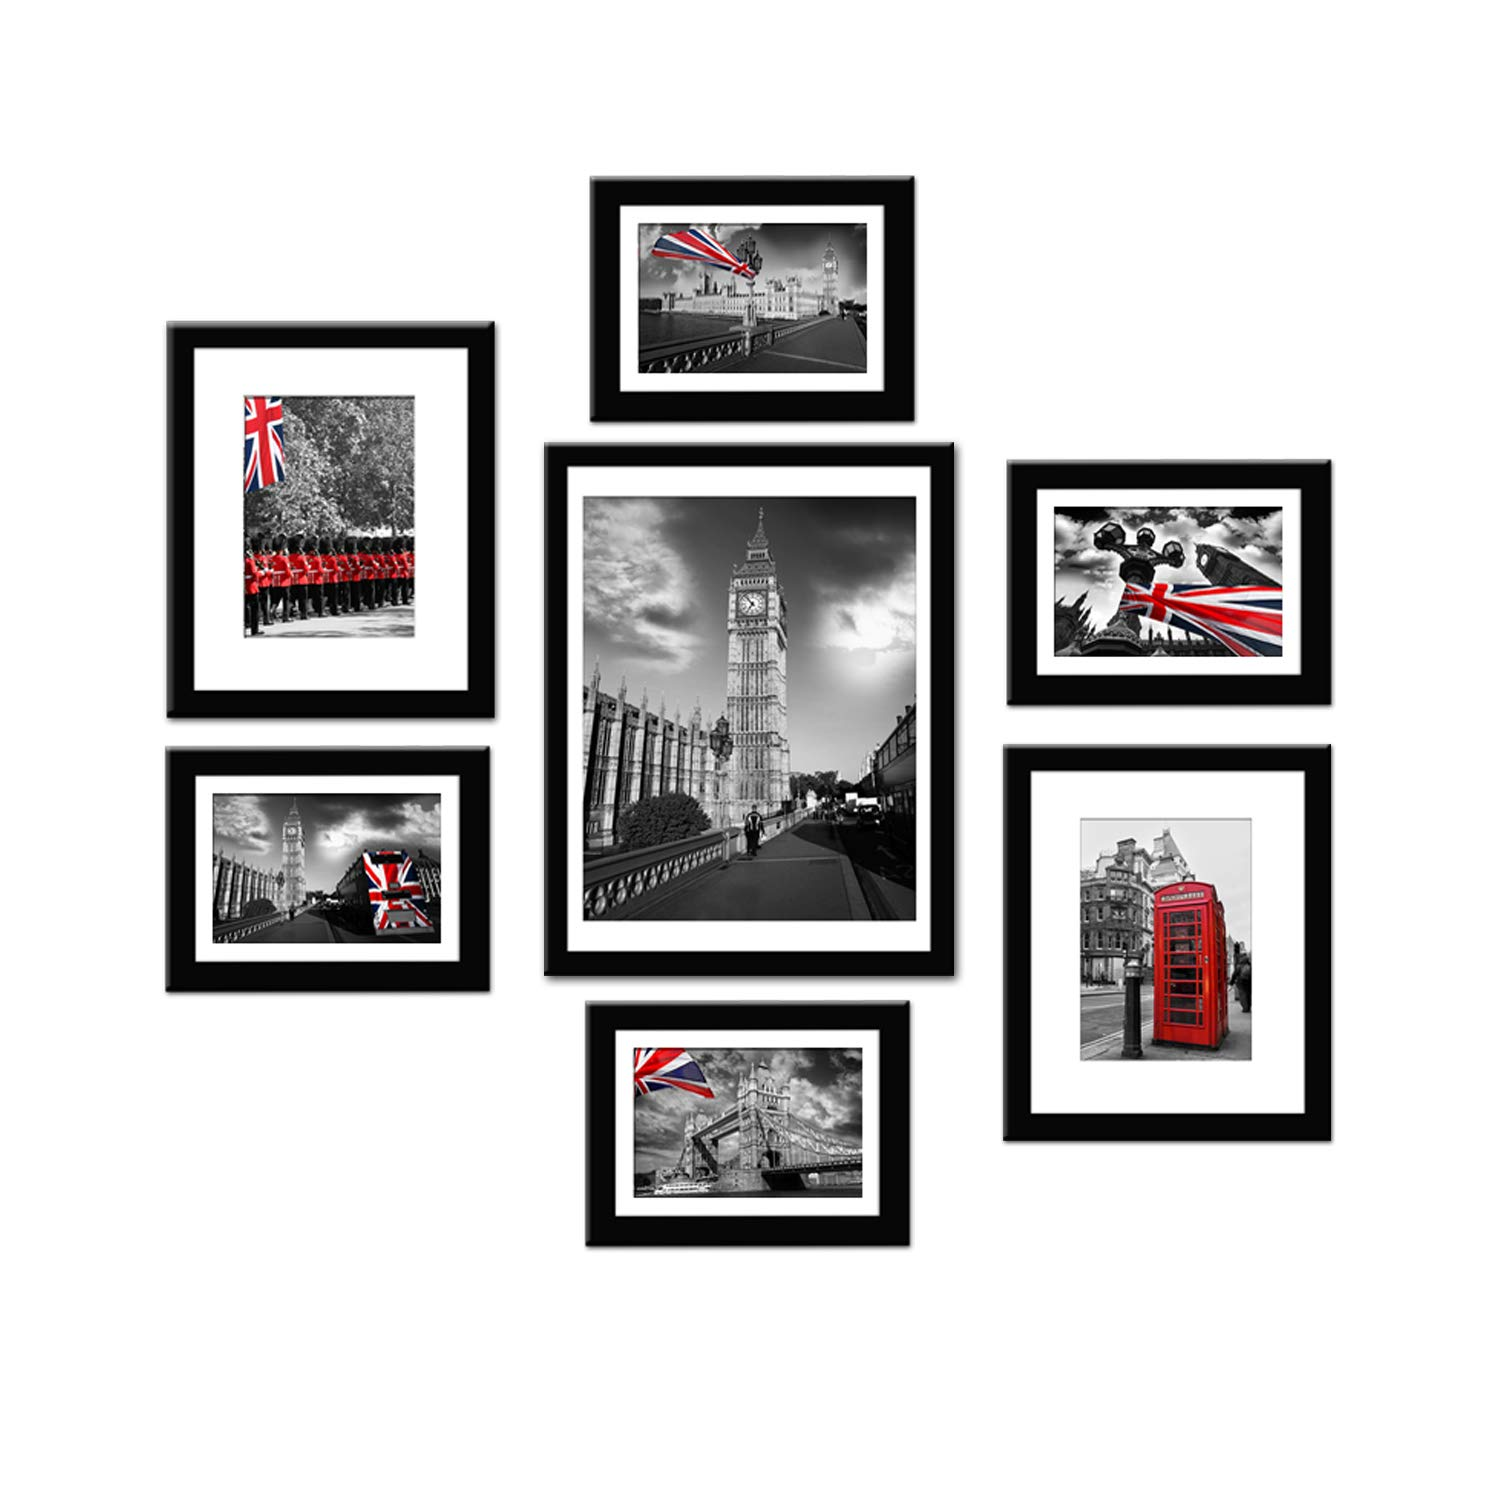 Picture Frames Set Black Solid Wood Photo Frames Collage Wall Gallery. 4 Pcs 5x7, 2 Pcs 8x10, 1Pc 12x16 with Mat, Picture Frame collection Display on a Wall or TableTop for Office, Living room by Elegart